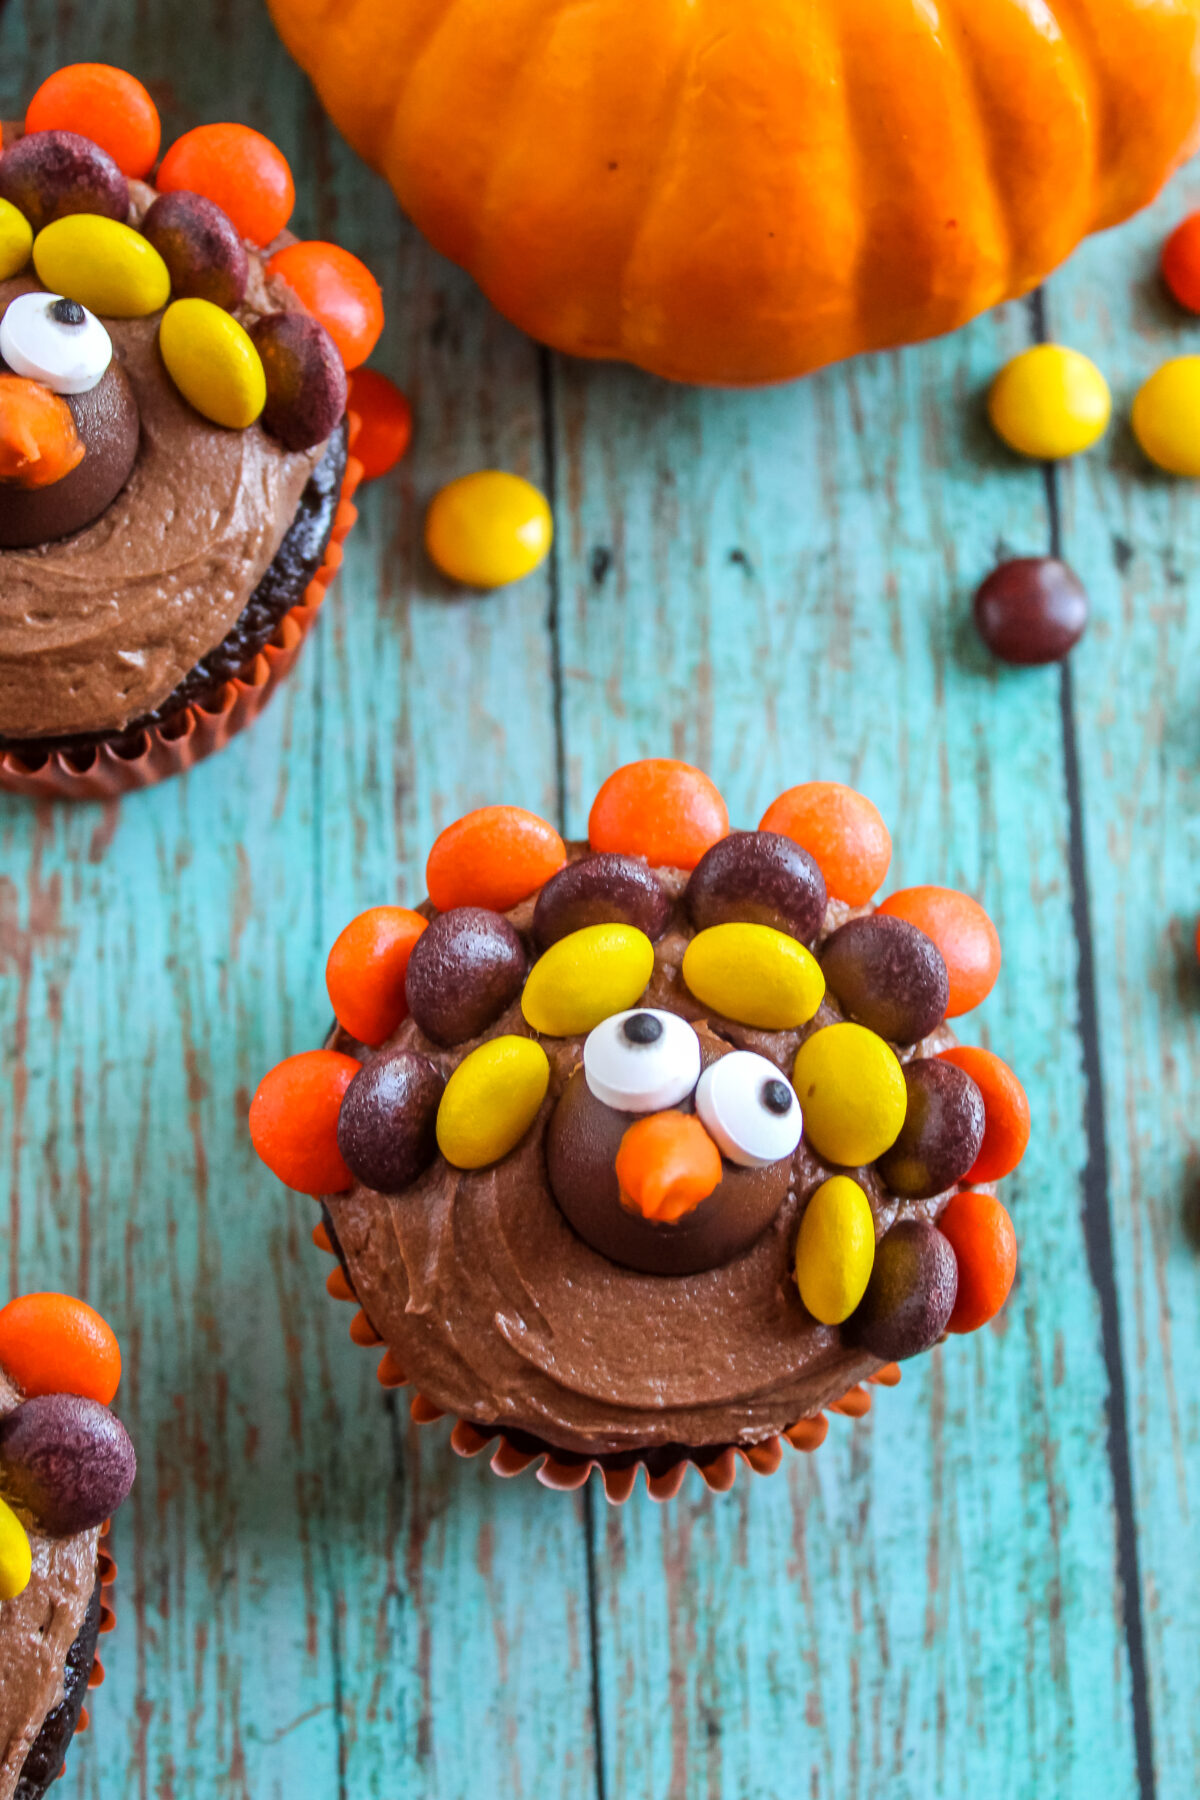 These fun and easy to make Thanksgiving turkey cupcakes will be a hit with kids of all ages. Learn how to decorate cupcakes like turkeys!